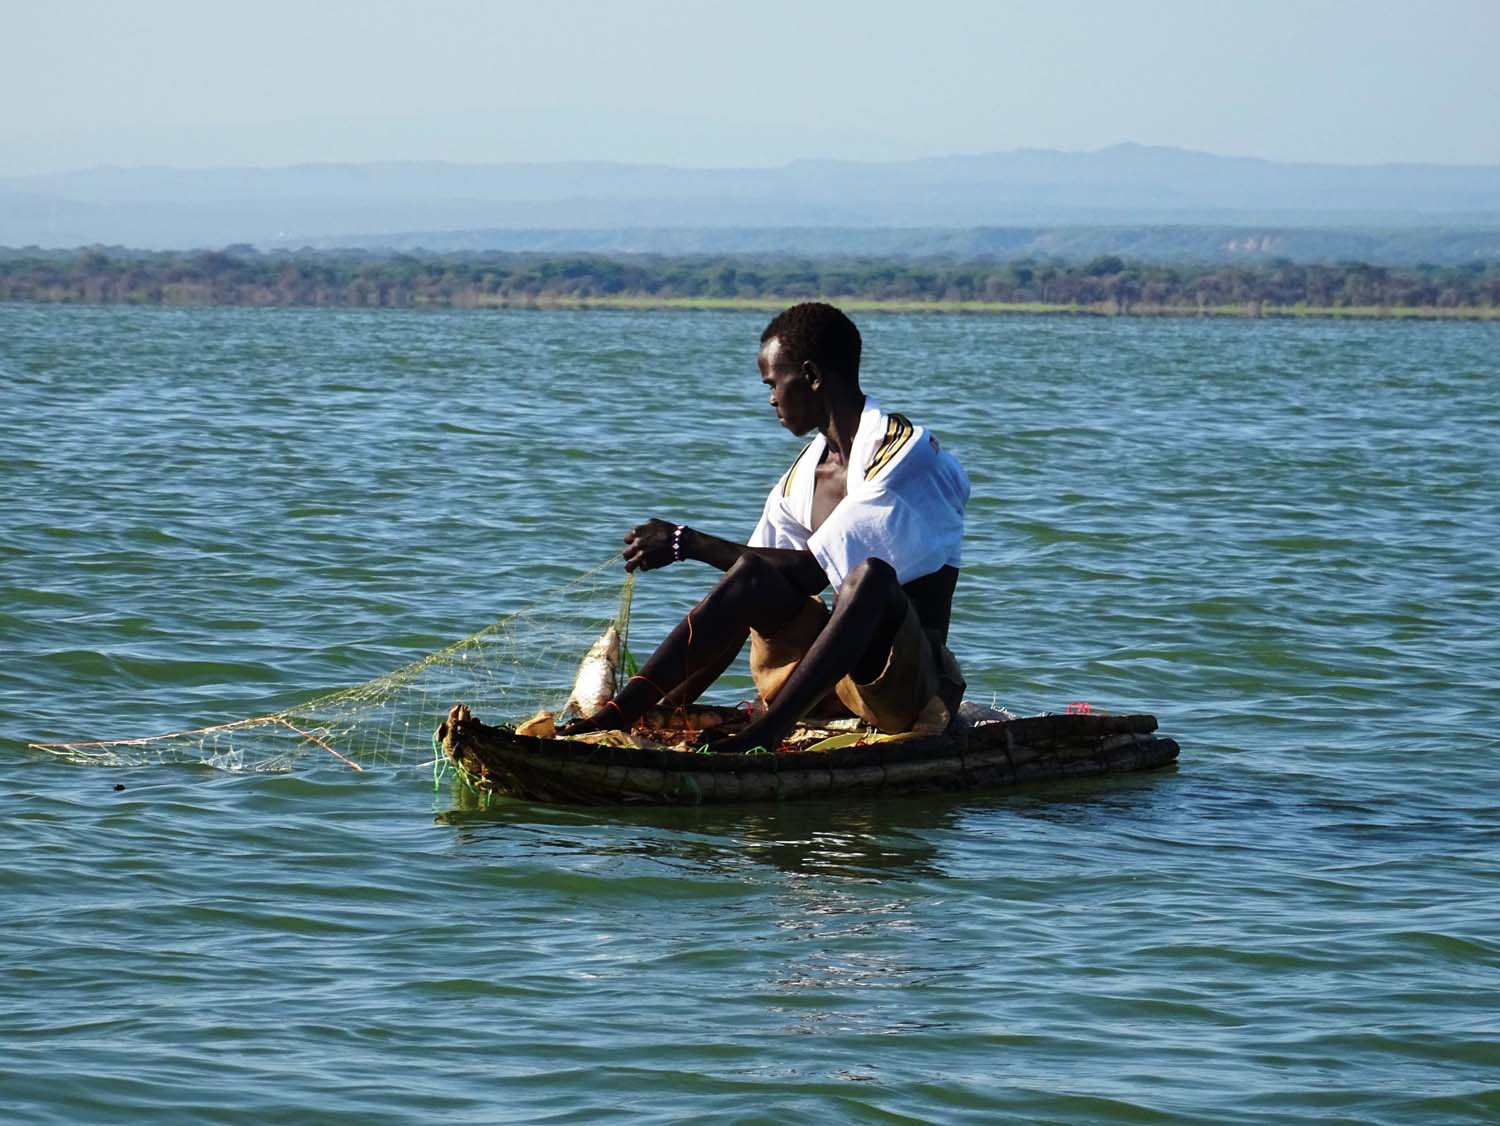 fisherman on lake Baringo on his home made kayak, checking his nets and pulling out a fish